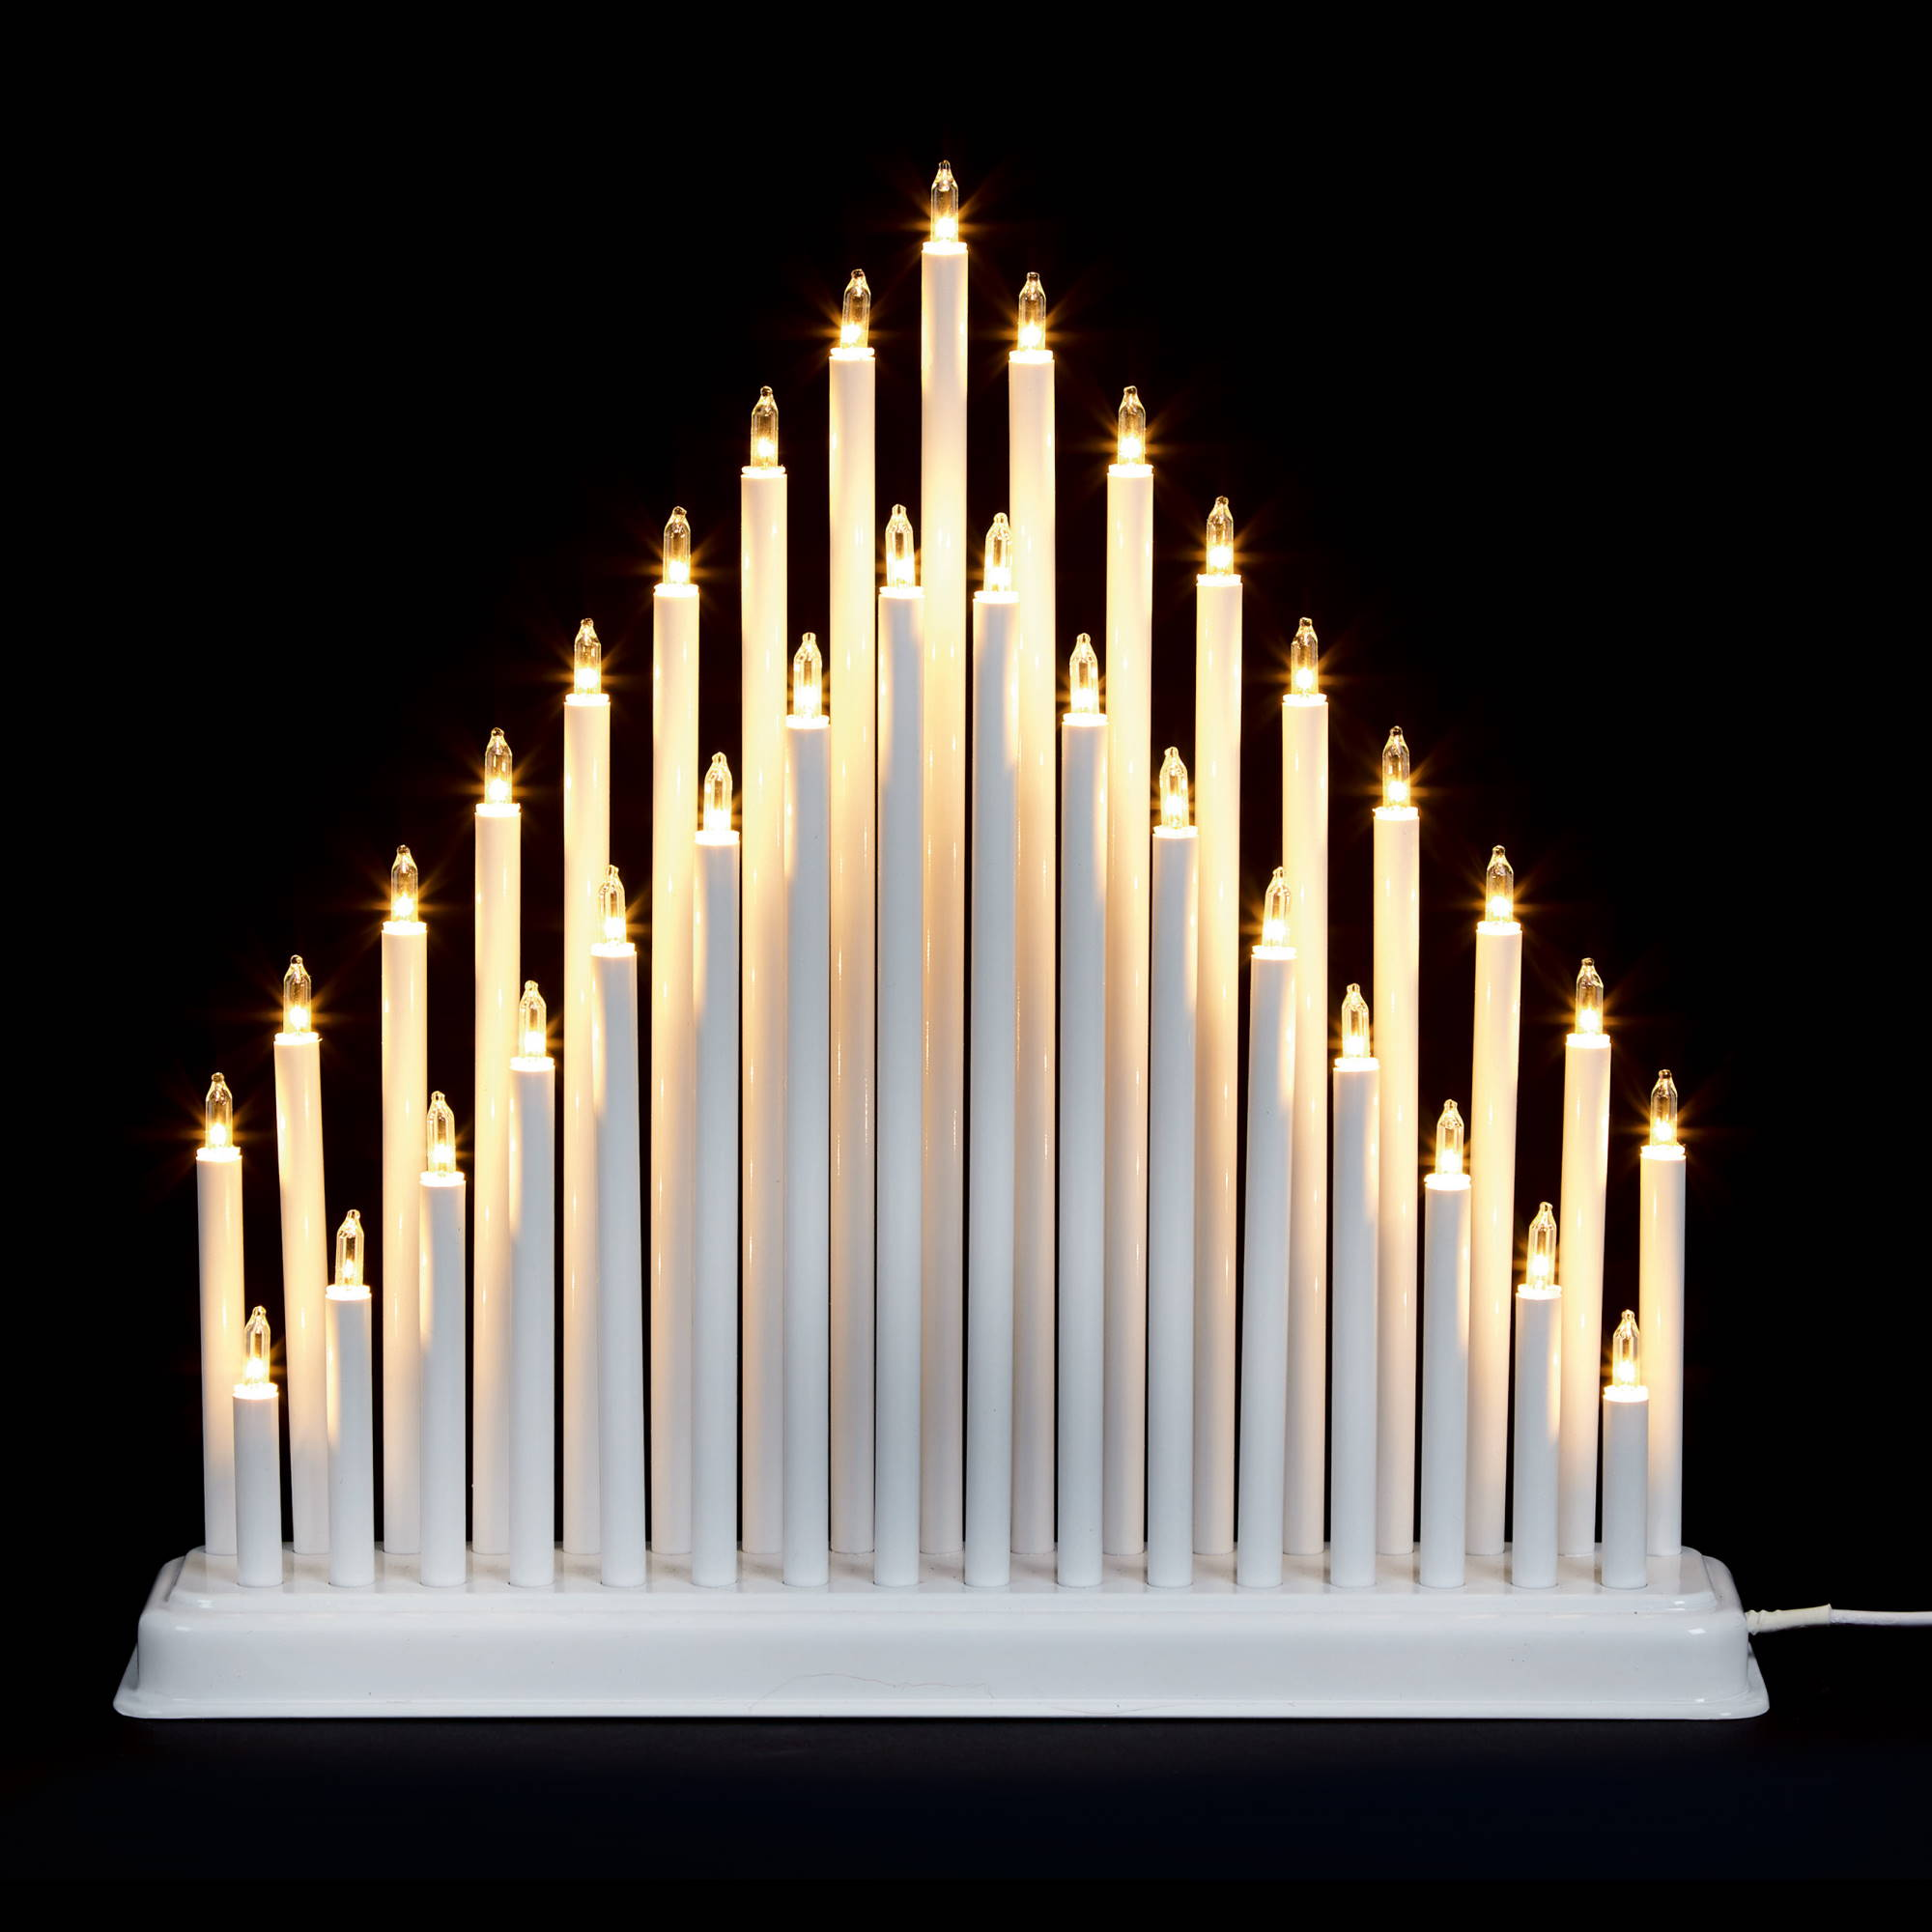 33 Light Christmas Candle Bridge Tower - White